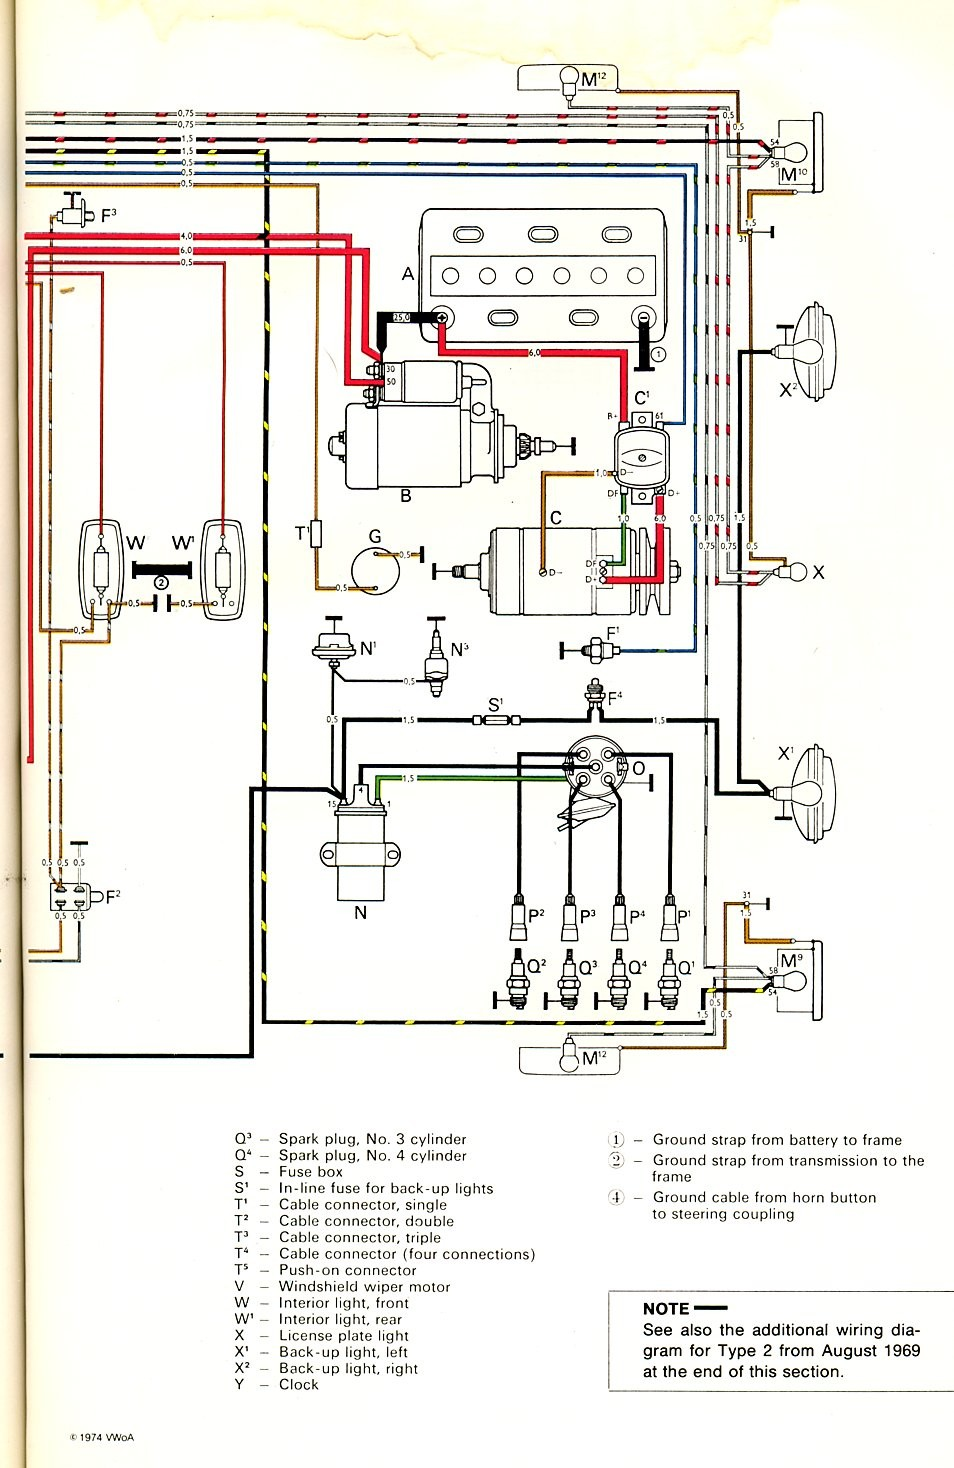 72 Vw Alternator Wiring Auto Electrical Diagram Free Volkswagen Diagrams Download Xwiaw 3 Rh Us Bug Schematic